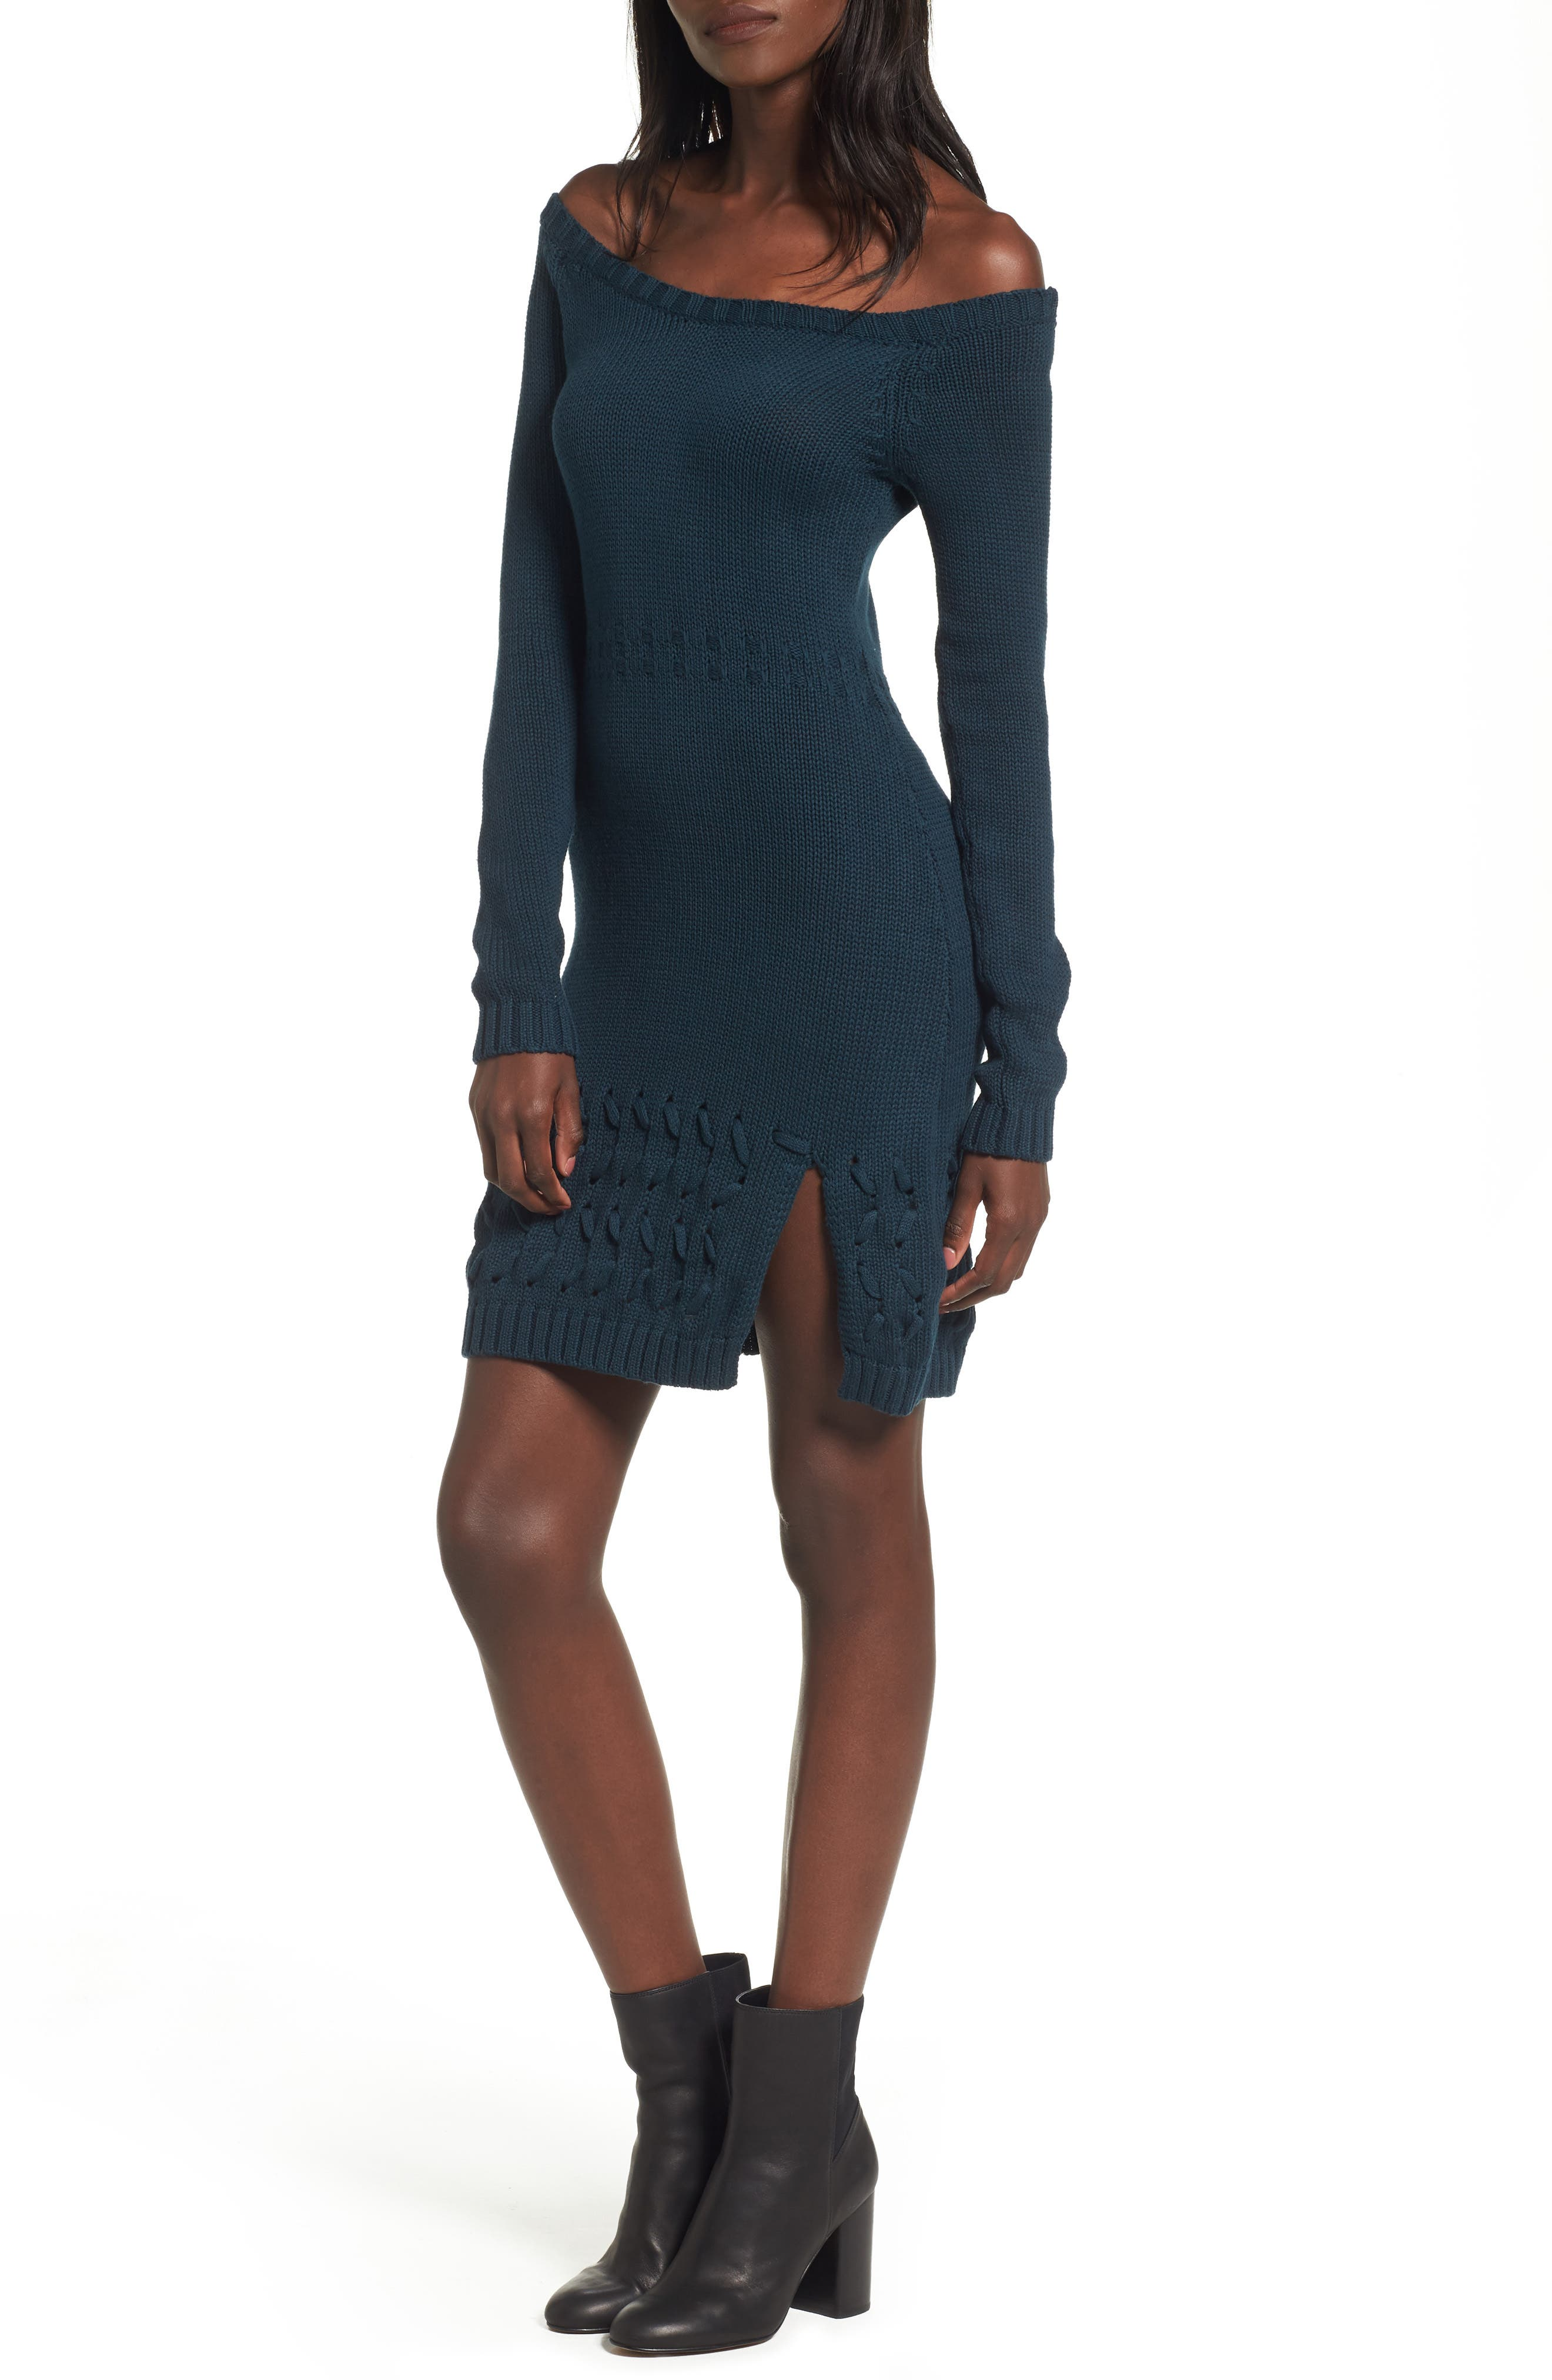 Main Image - Somedays Lovin Falling Free Knit Off the Shoulder Dress